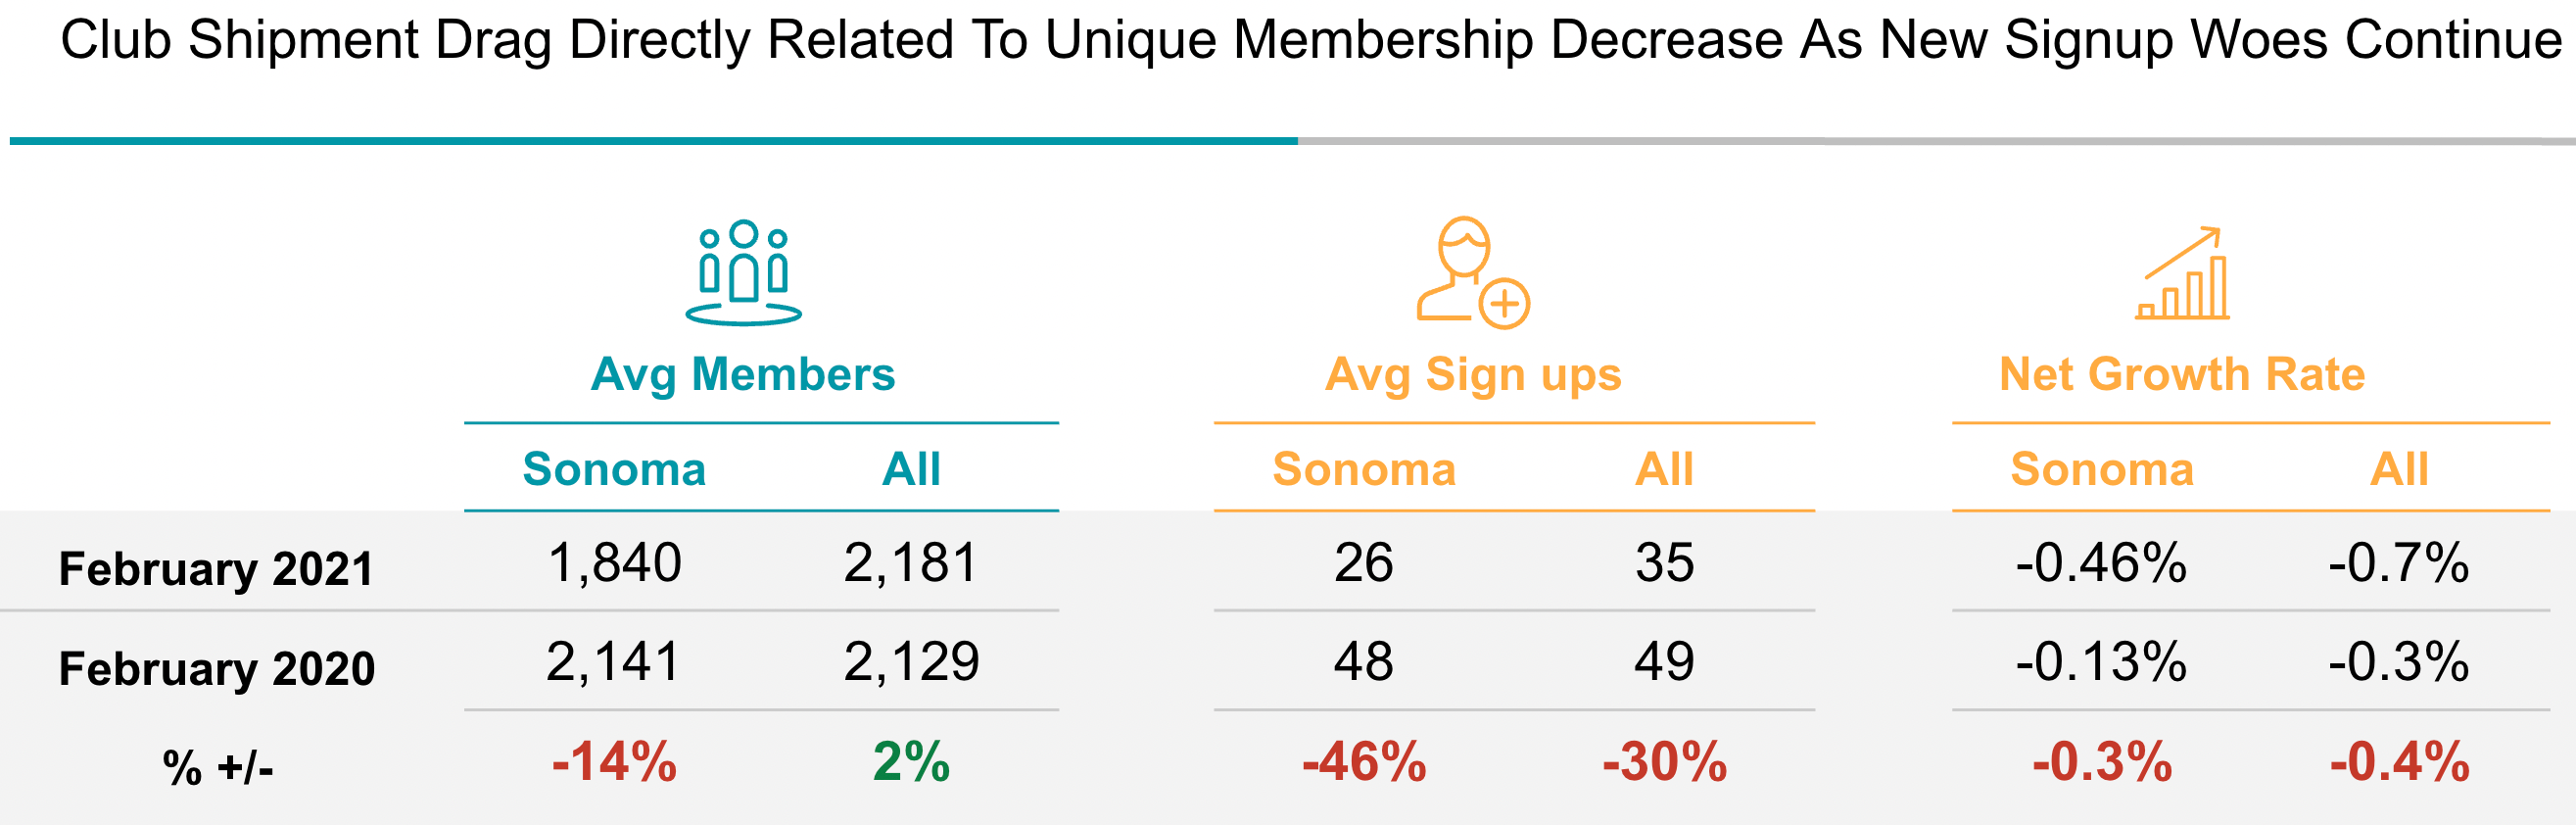 Club Shipment Drag Directly Related To Membership Decrease